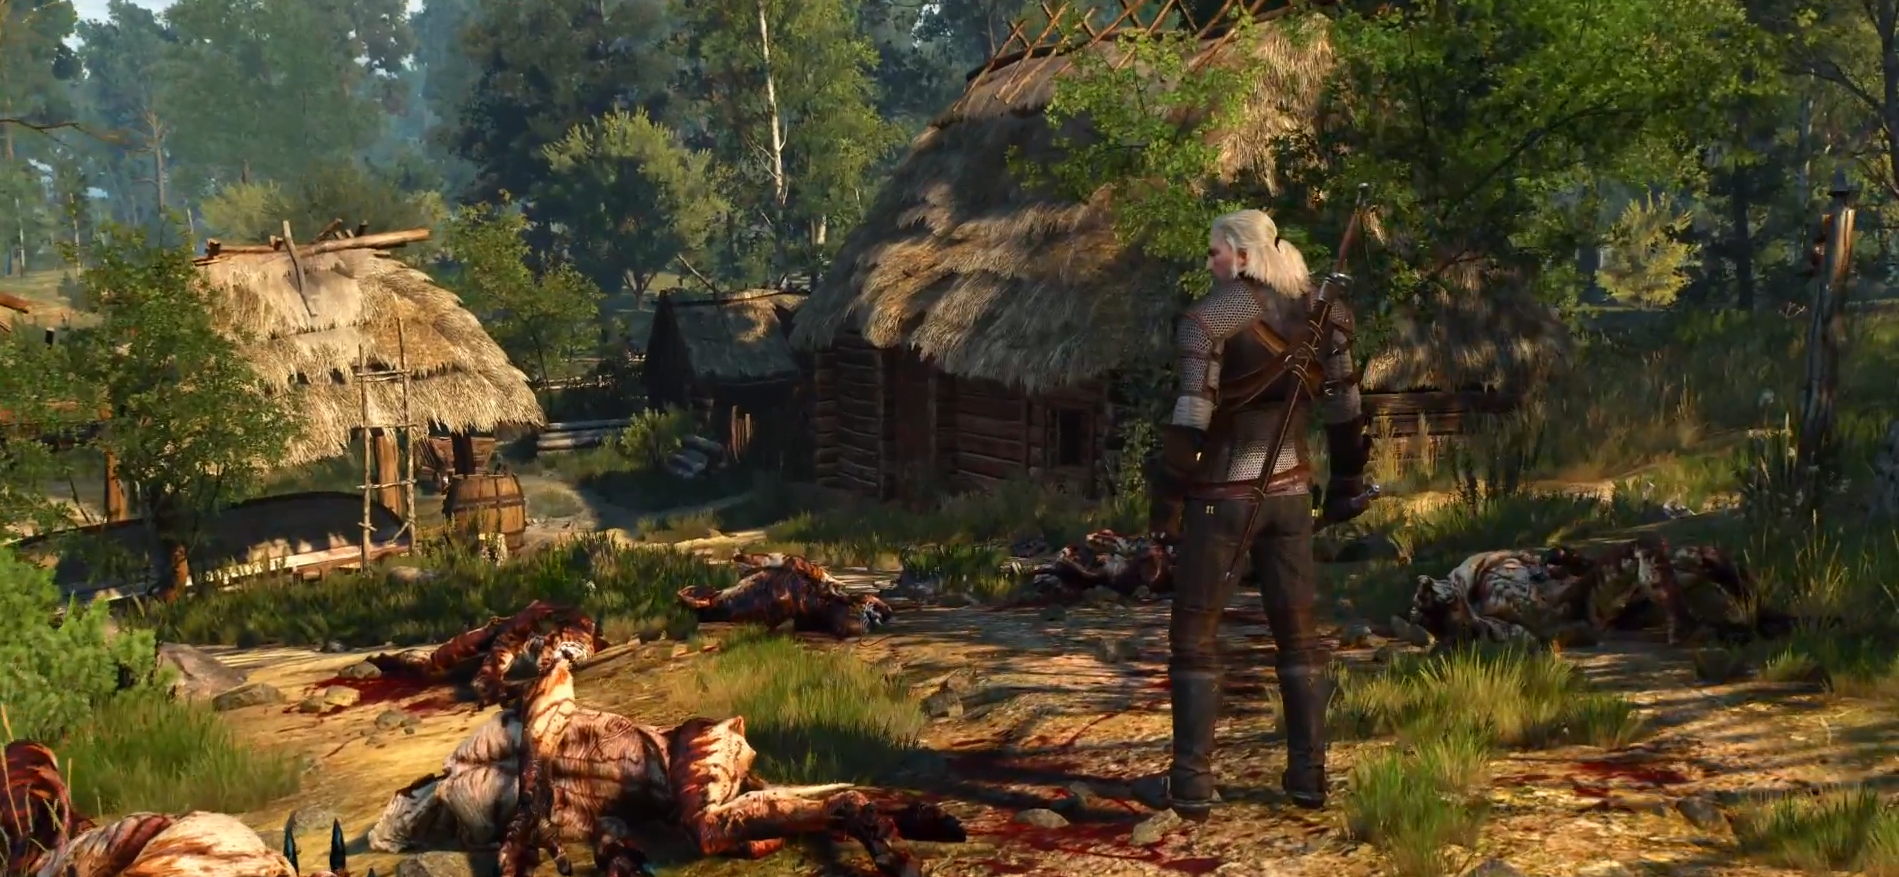 Photo of Beautiful World of the Witcher Trailer Released